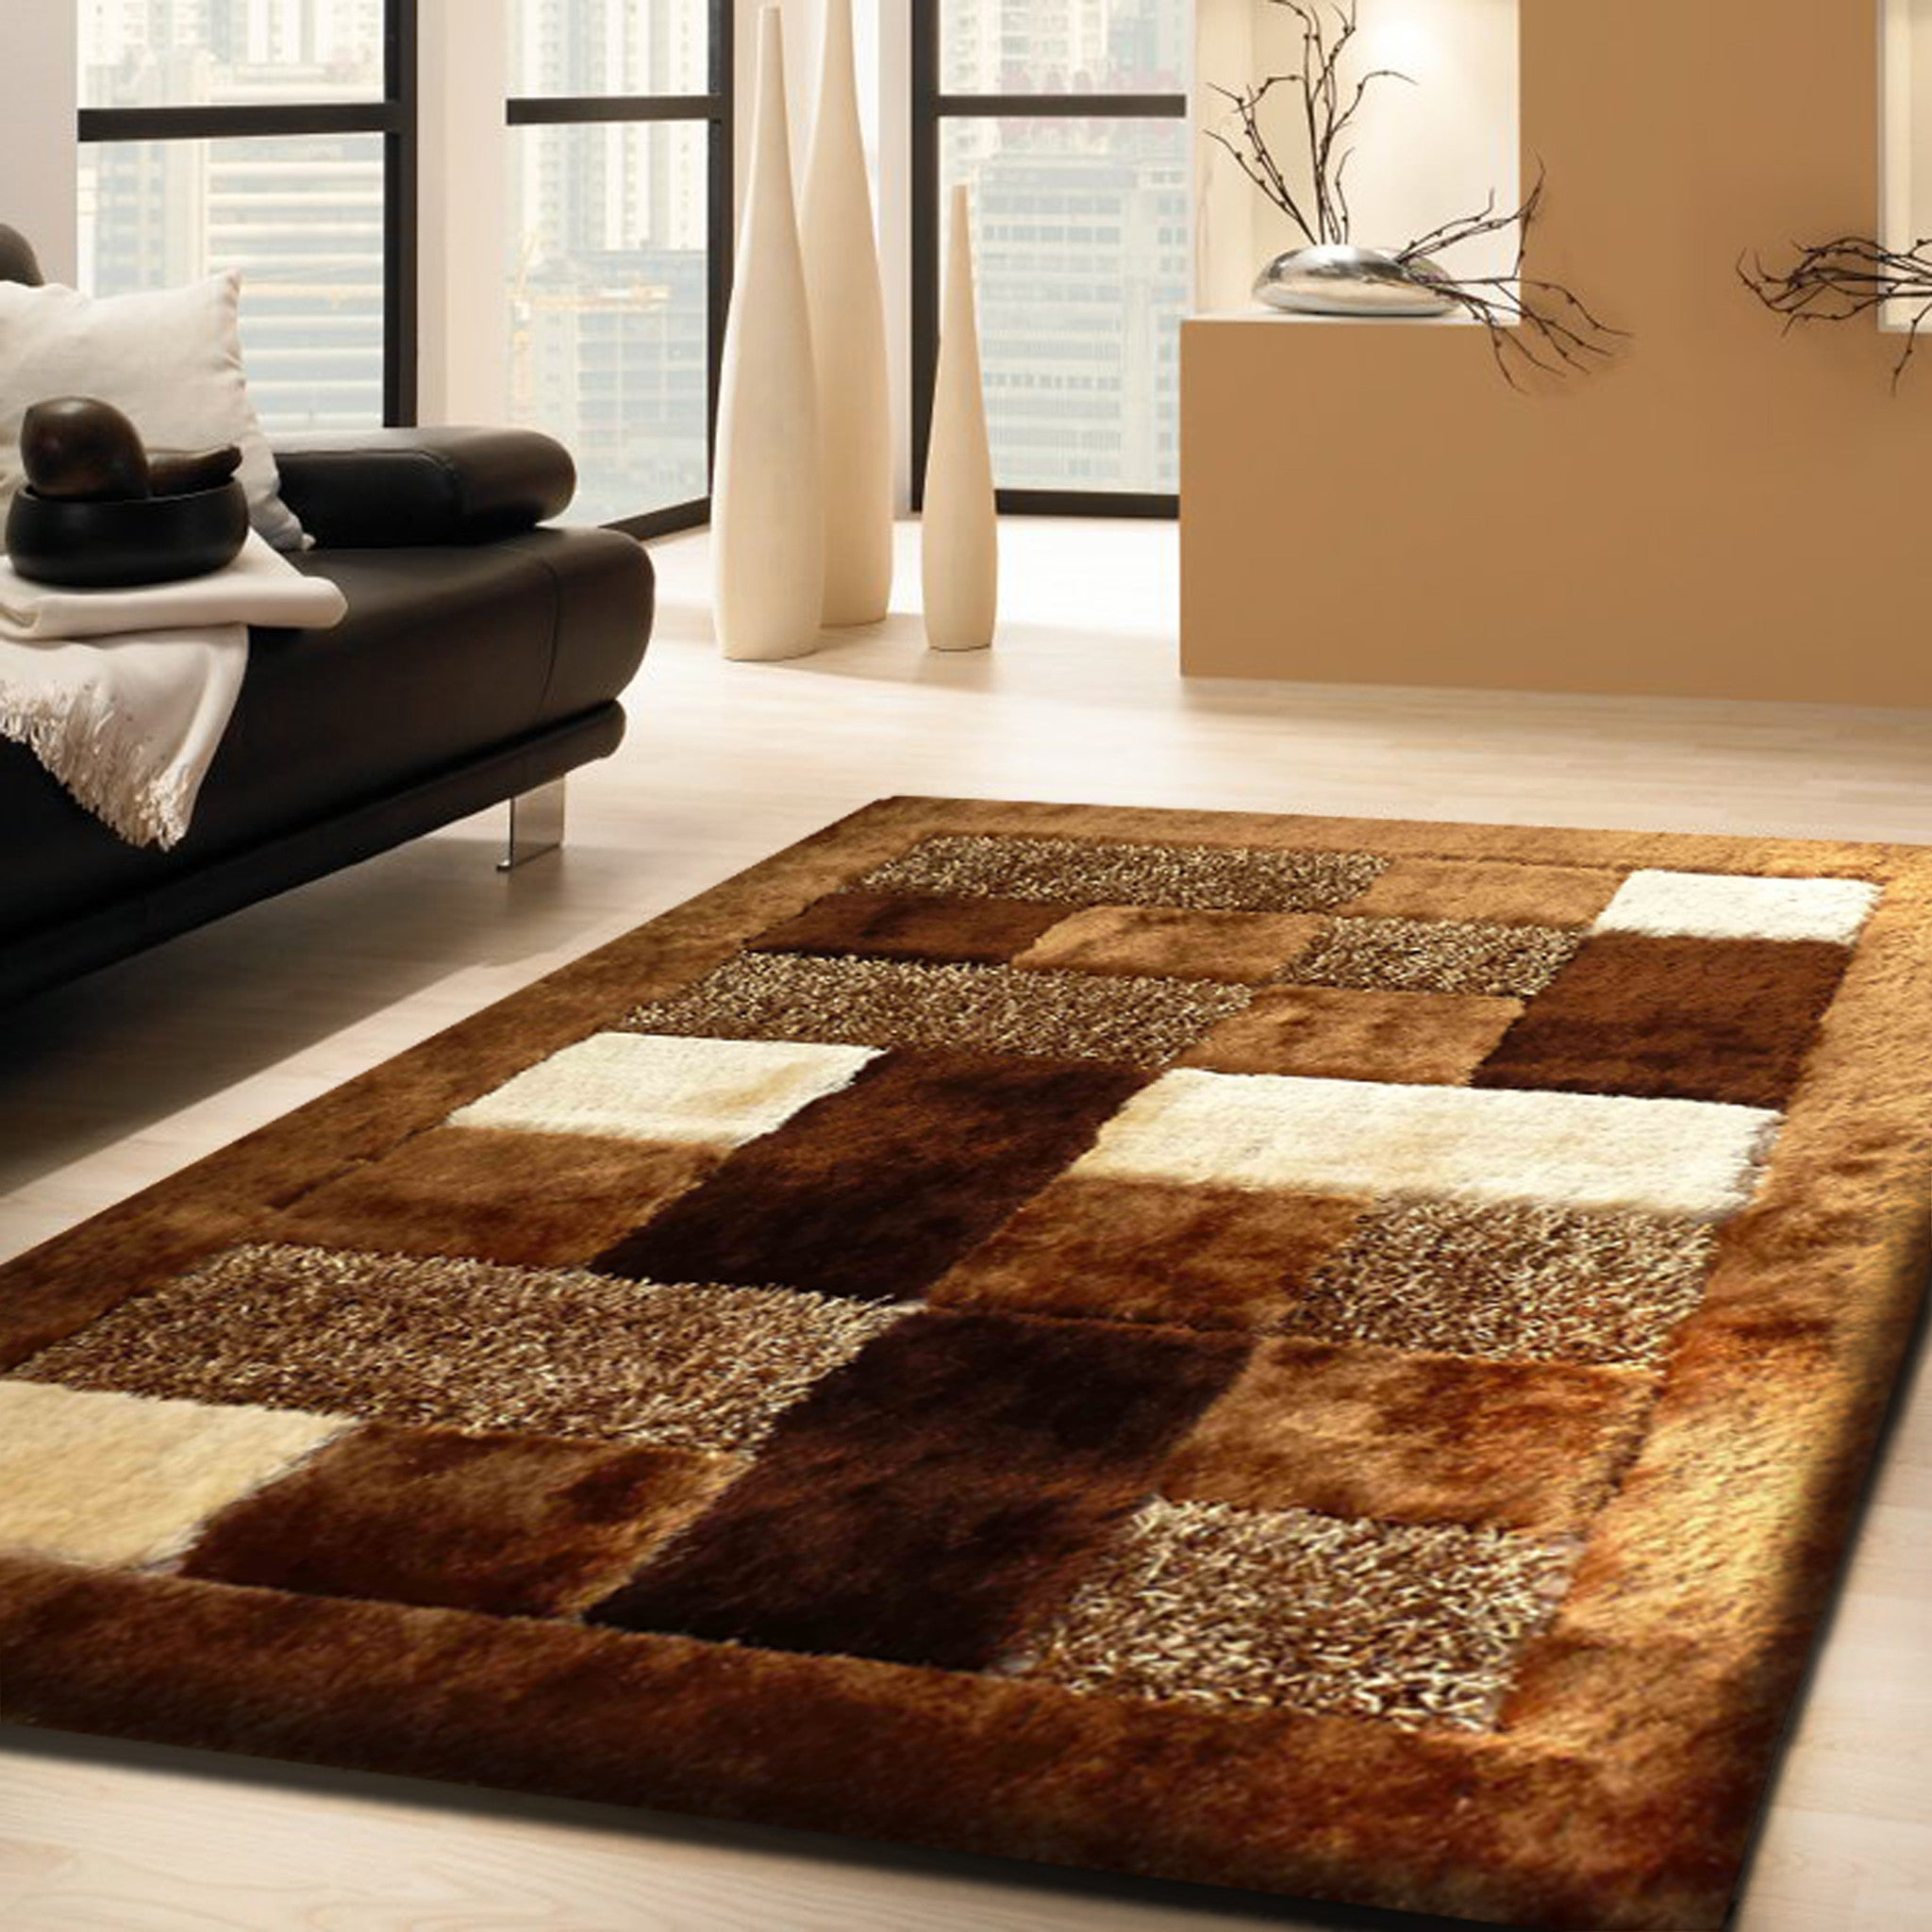 Brown shaggy hand tufted area rug by rug addiction for Living room mats